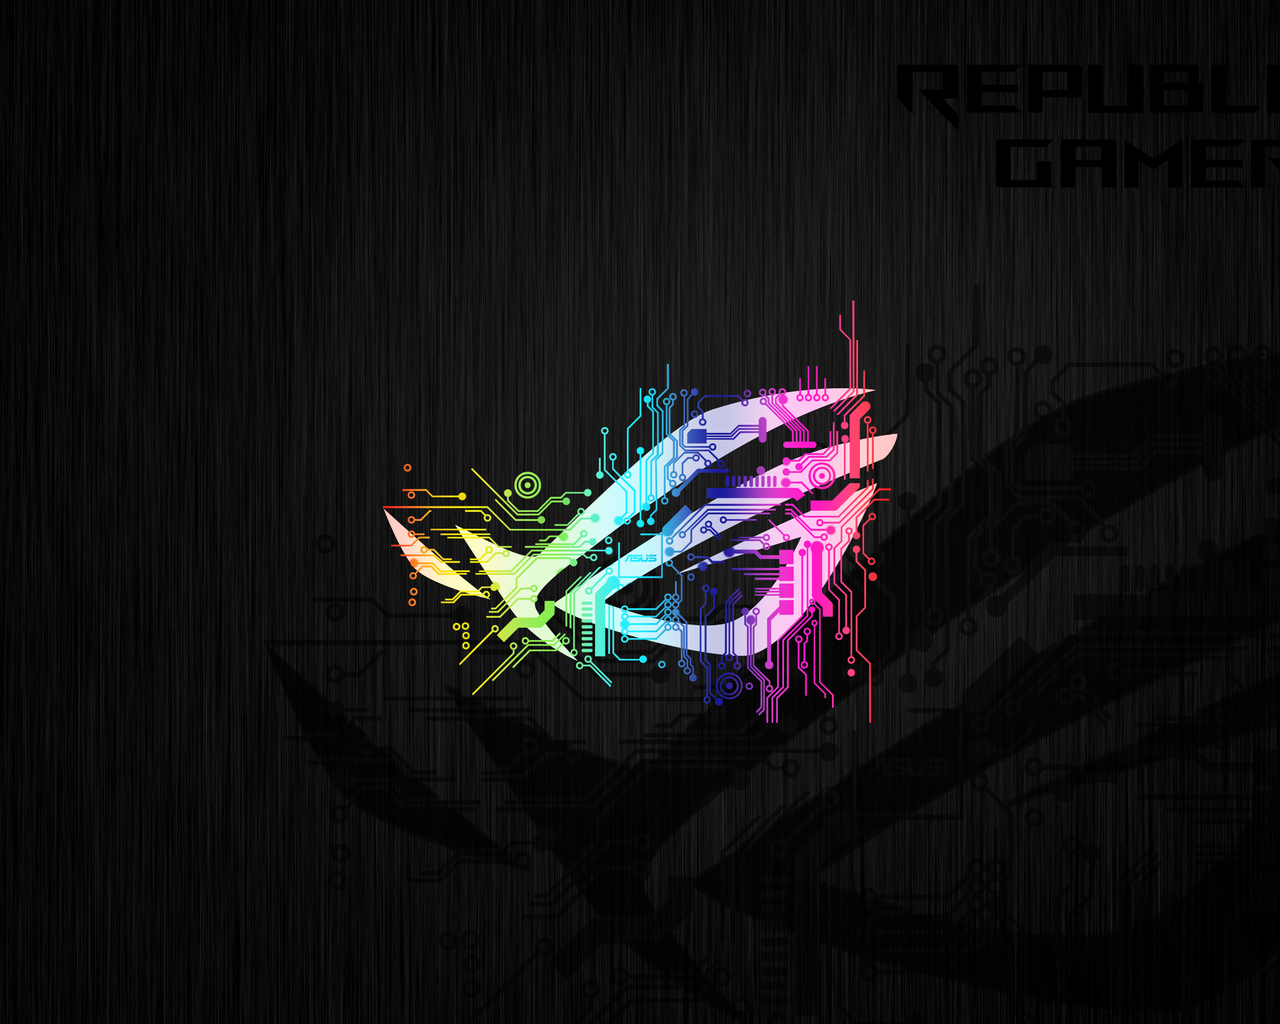 1280x1024 Republic Of Gamers Abstract Logo 4k 1280x1024